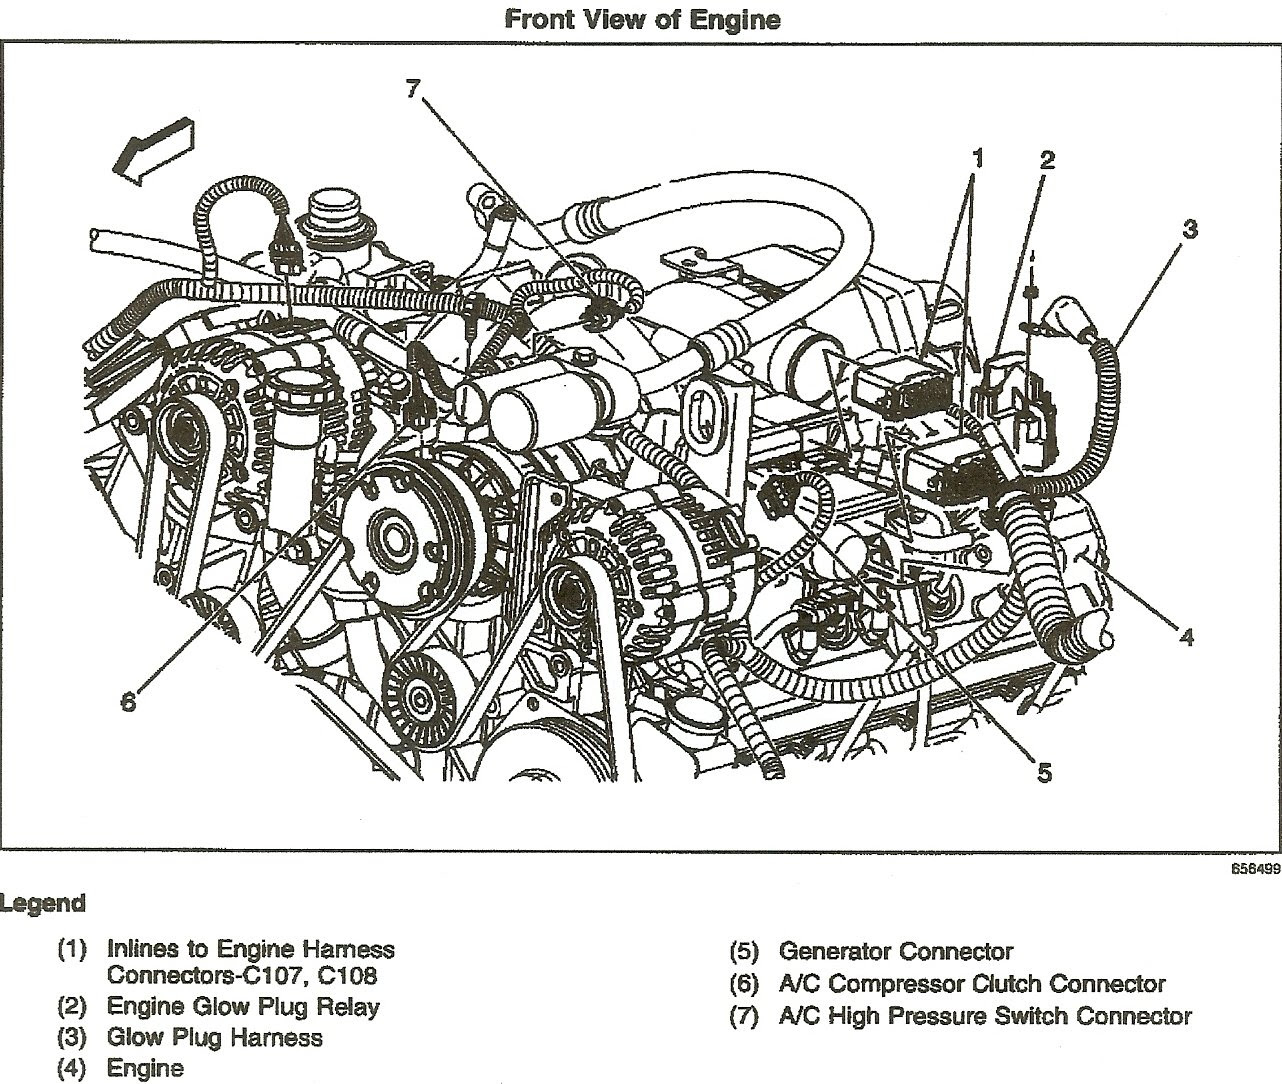 6 5 Diesel Glow Plug Wiring Diagram - Wiring Diagram Networks